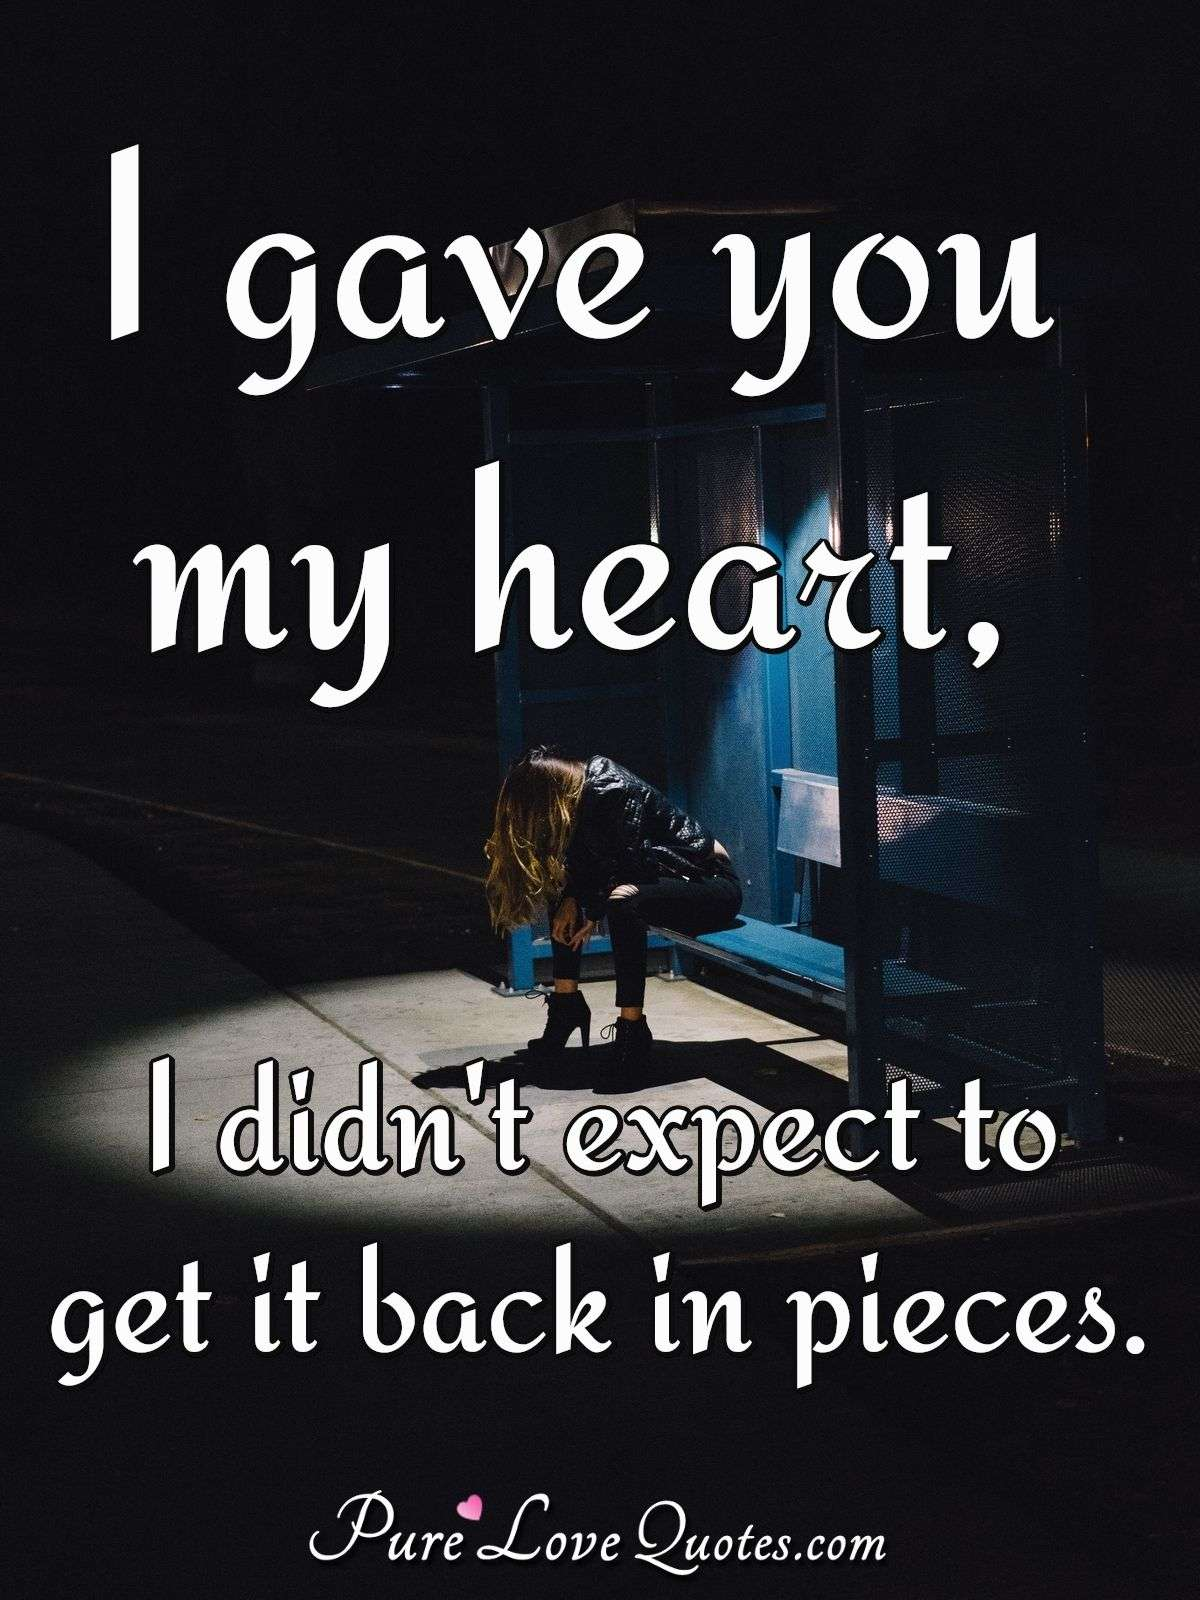 I gave you my heart, I didn't expect to get it back in pieces. - Anonymous